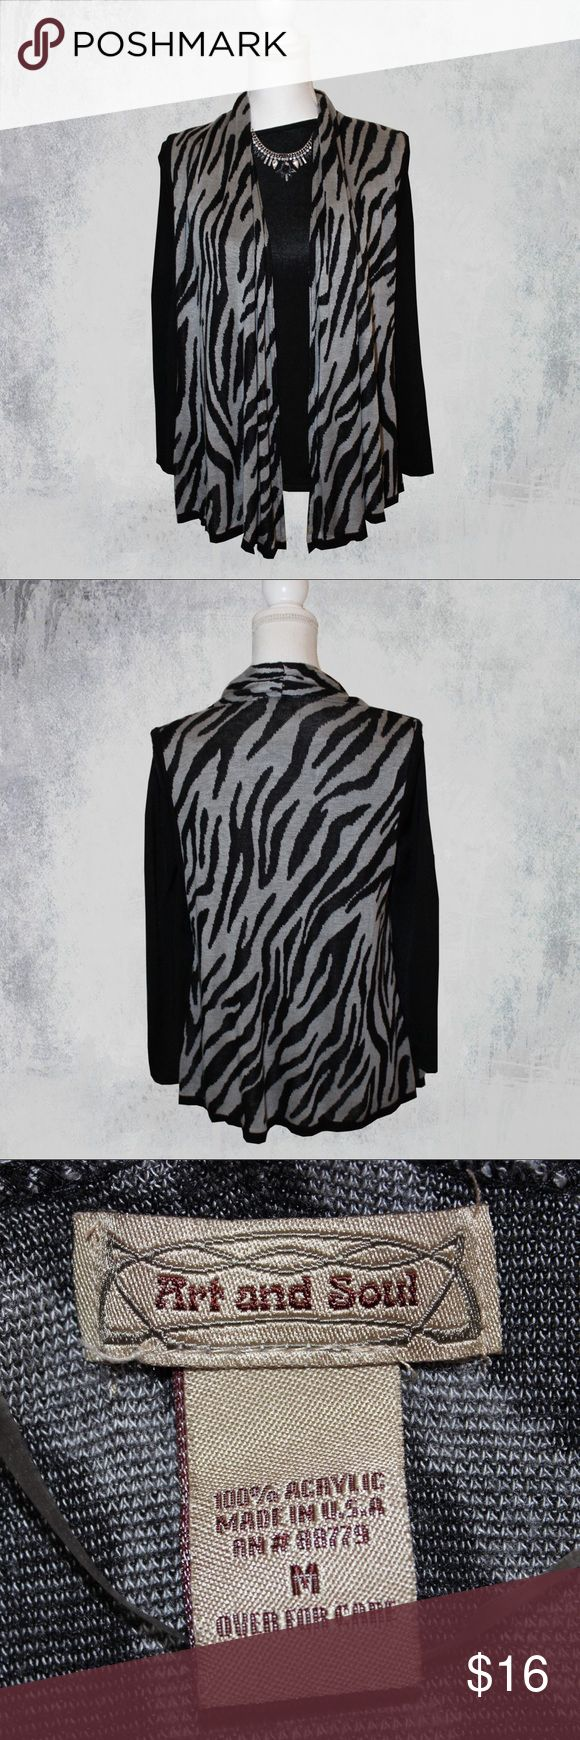 "Art and Soul Animal Print Vest This adorable vest is so versatile. You can wear it to work or out for date night.   * Colors - Black and gray * Stretchy * Longer sides than back * Material gathers at back of neck so it cascades down the sides in the front * 100% acrylic  MEASUREMENTS   * Armpit to pit 19.5"" * Waist 42"" * Hips 48"" * Length sides 31"" * Length back 25""  This vest, by Art and Soul, is in great condition - no flaws - and is a size Medium. Art And Soul Tops"